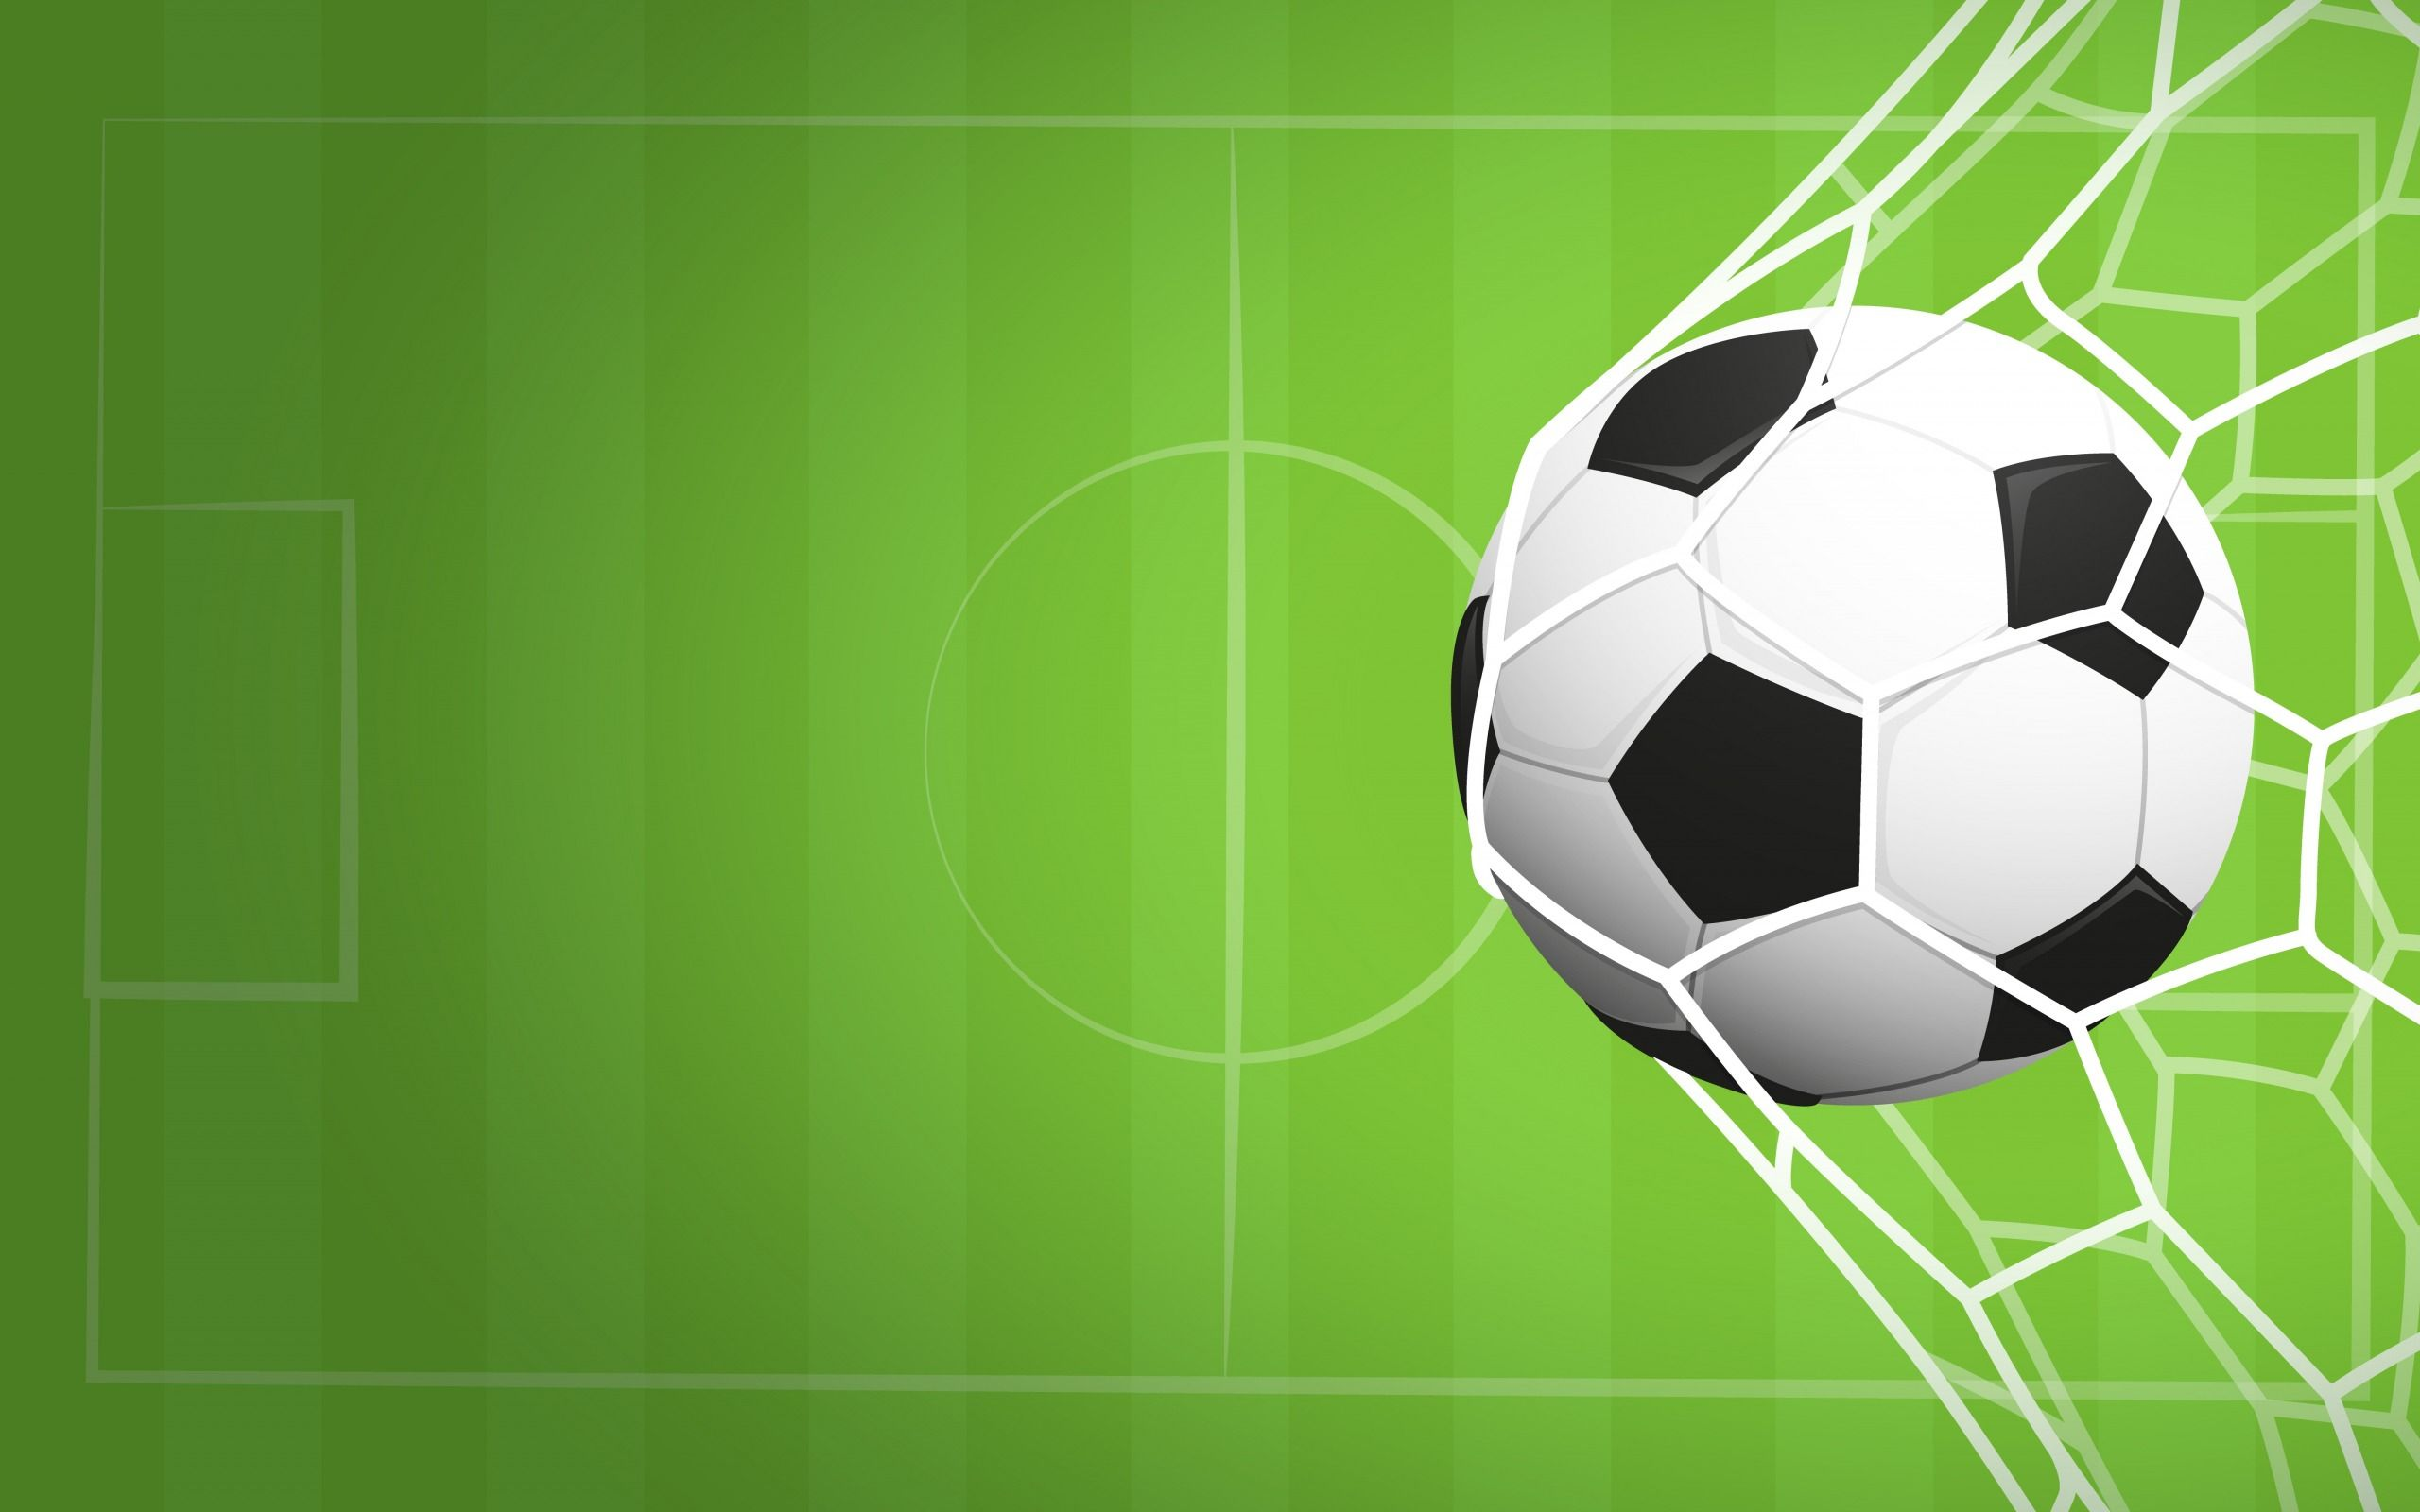 Soccer Goal Wallpaper Images Tgg Football Images Soccer Soccer Goal